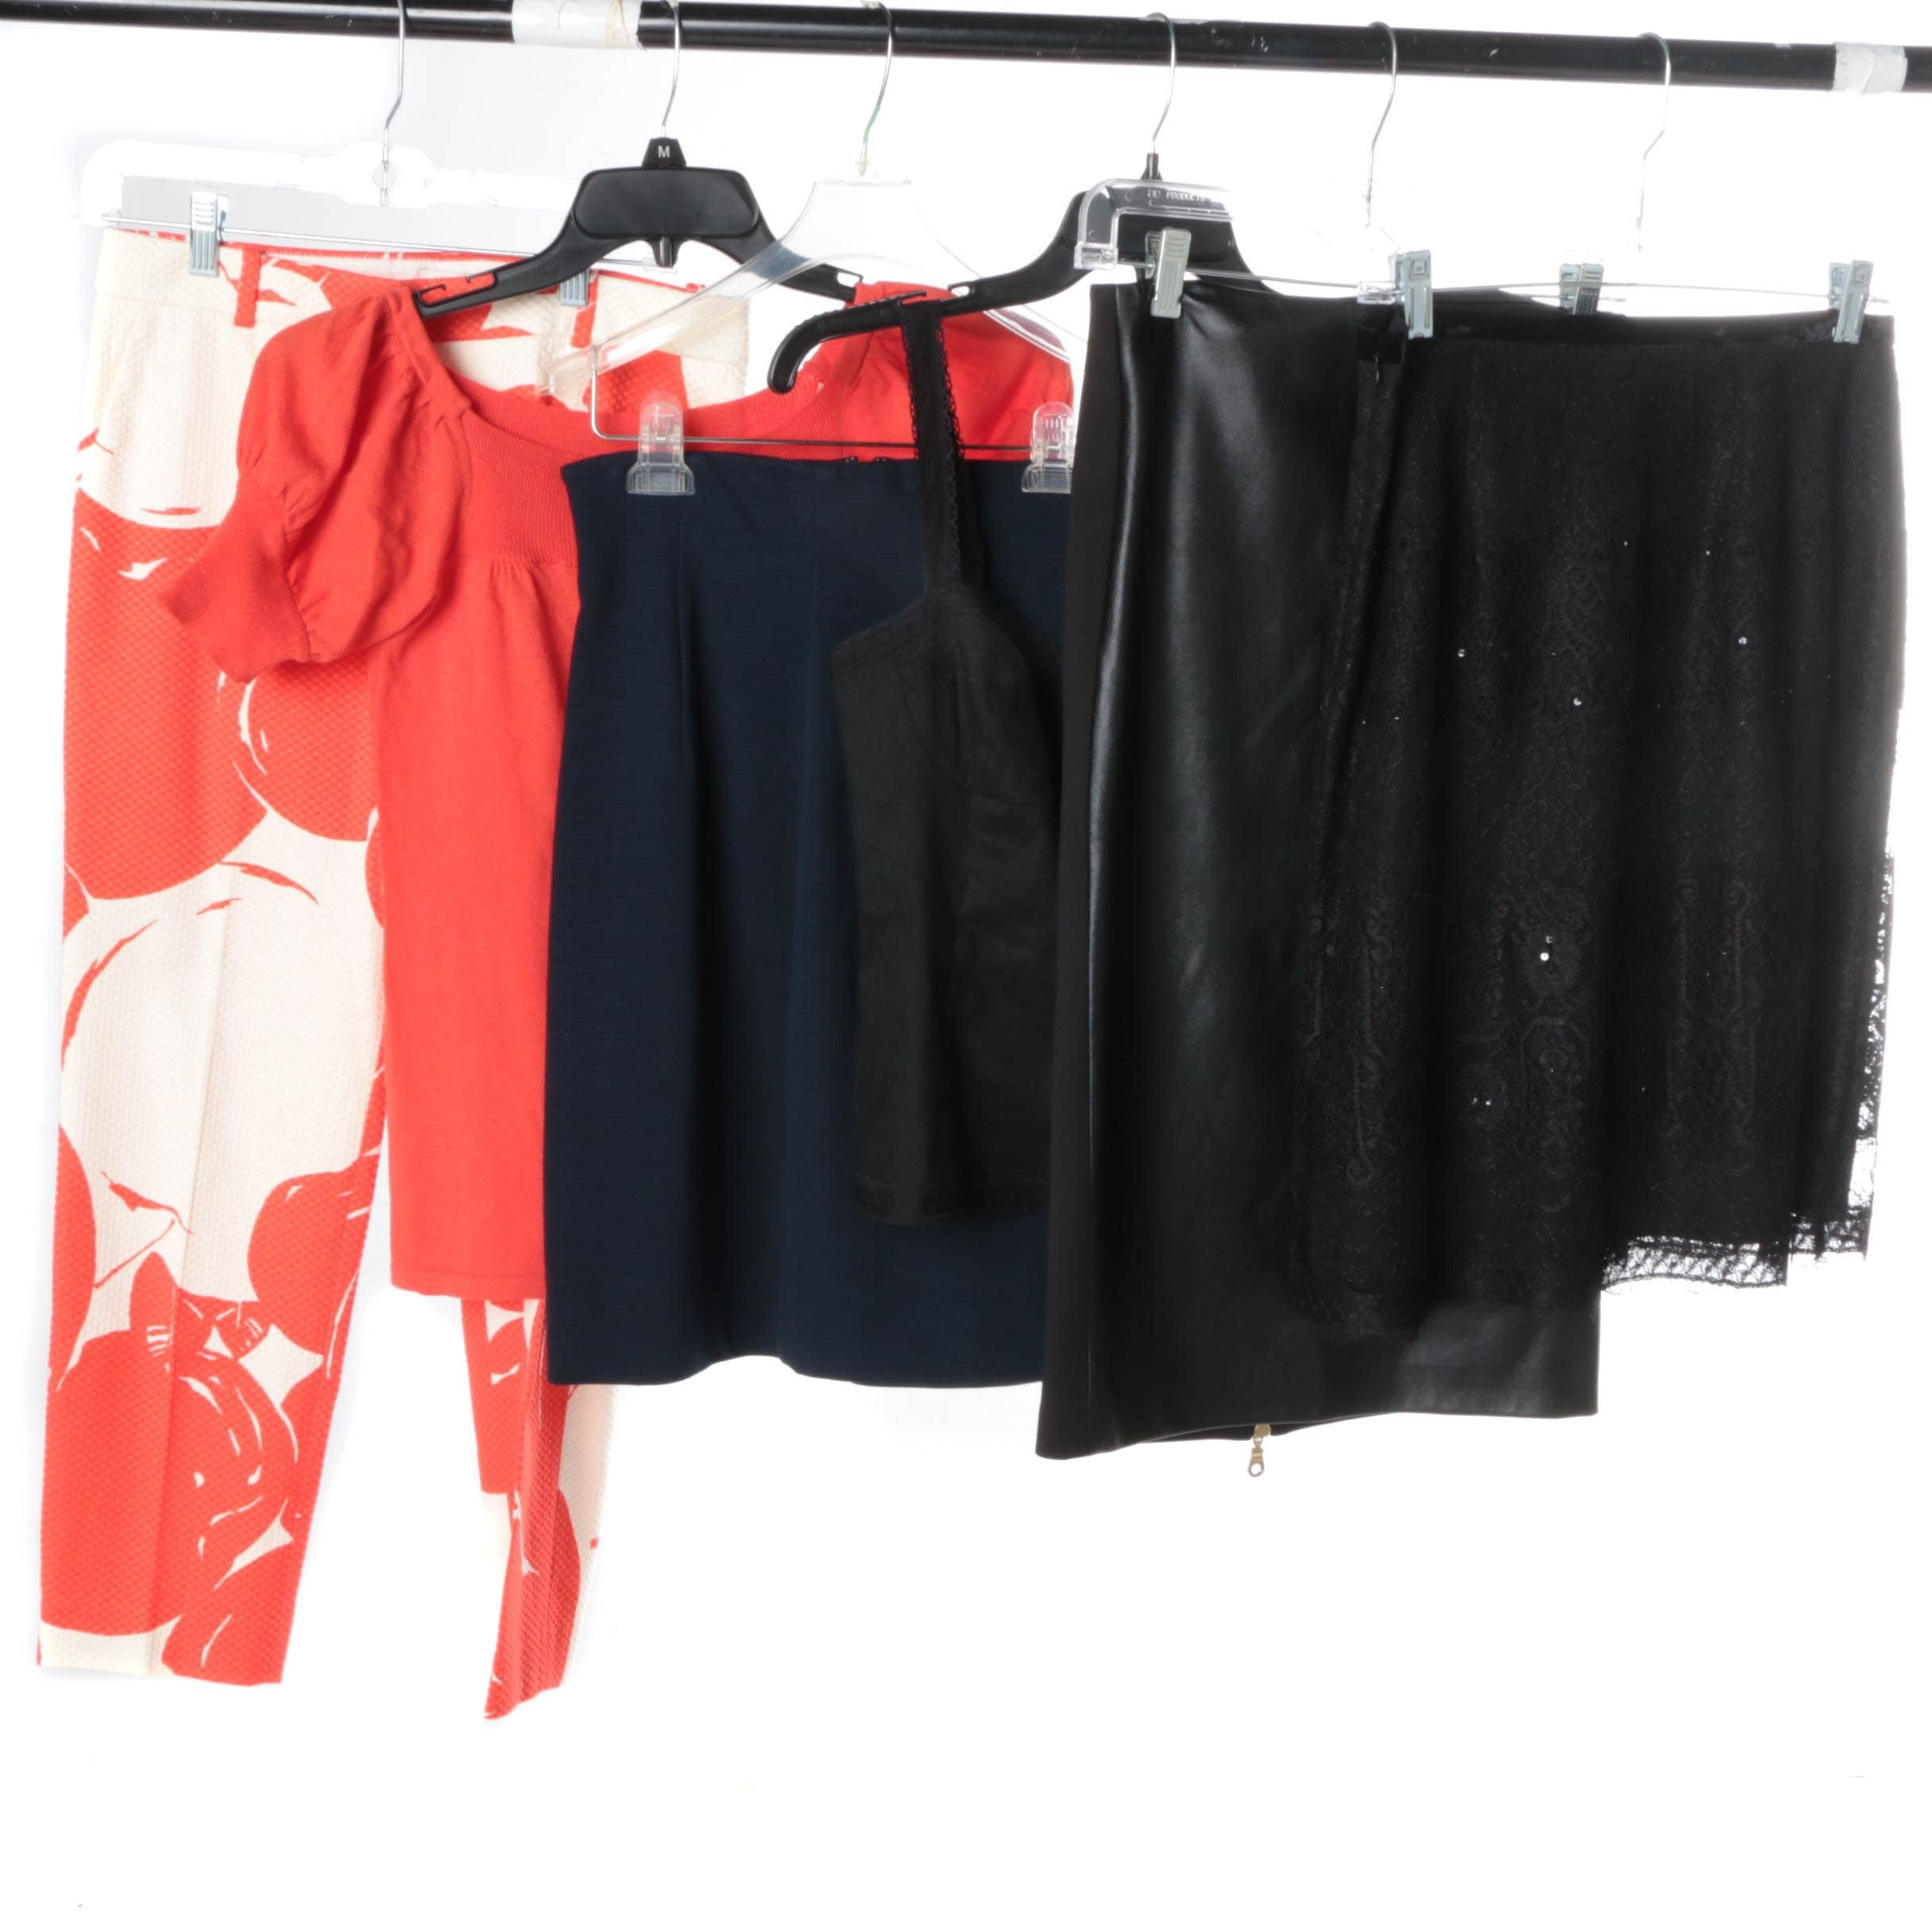 Women's Clothing Including Diane von Furstenberg and Trina Turk